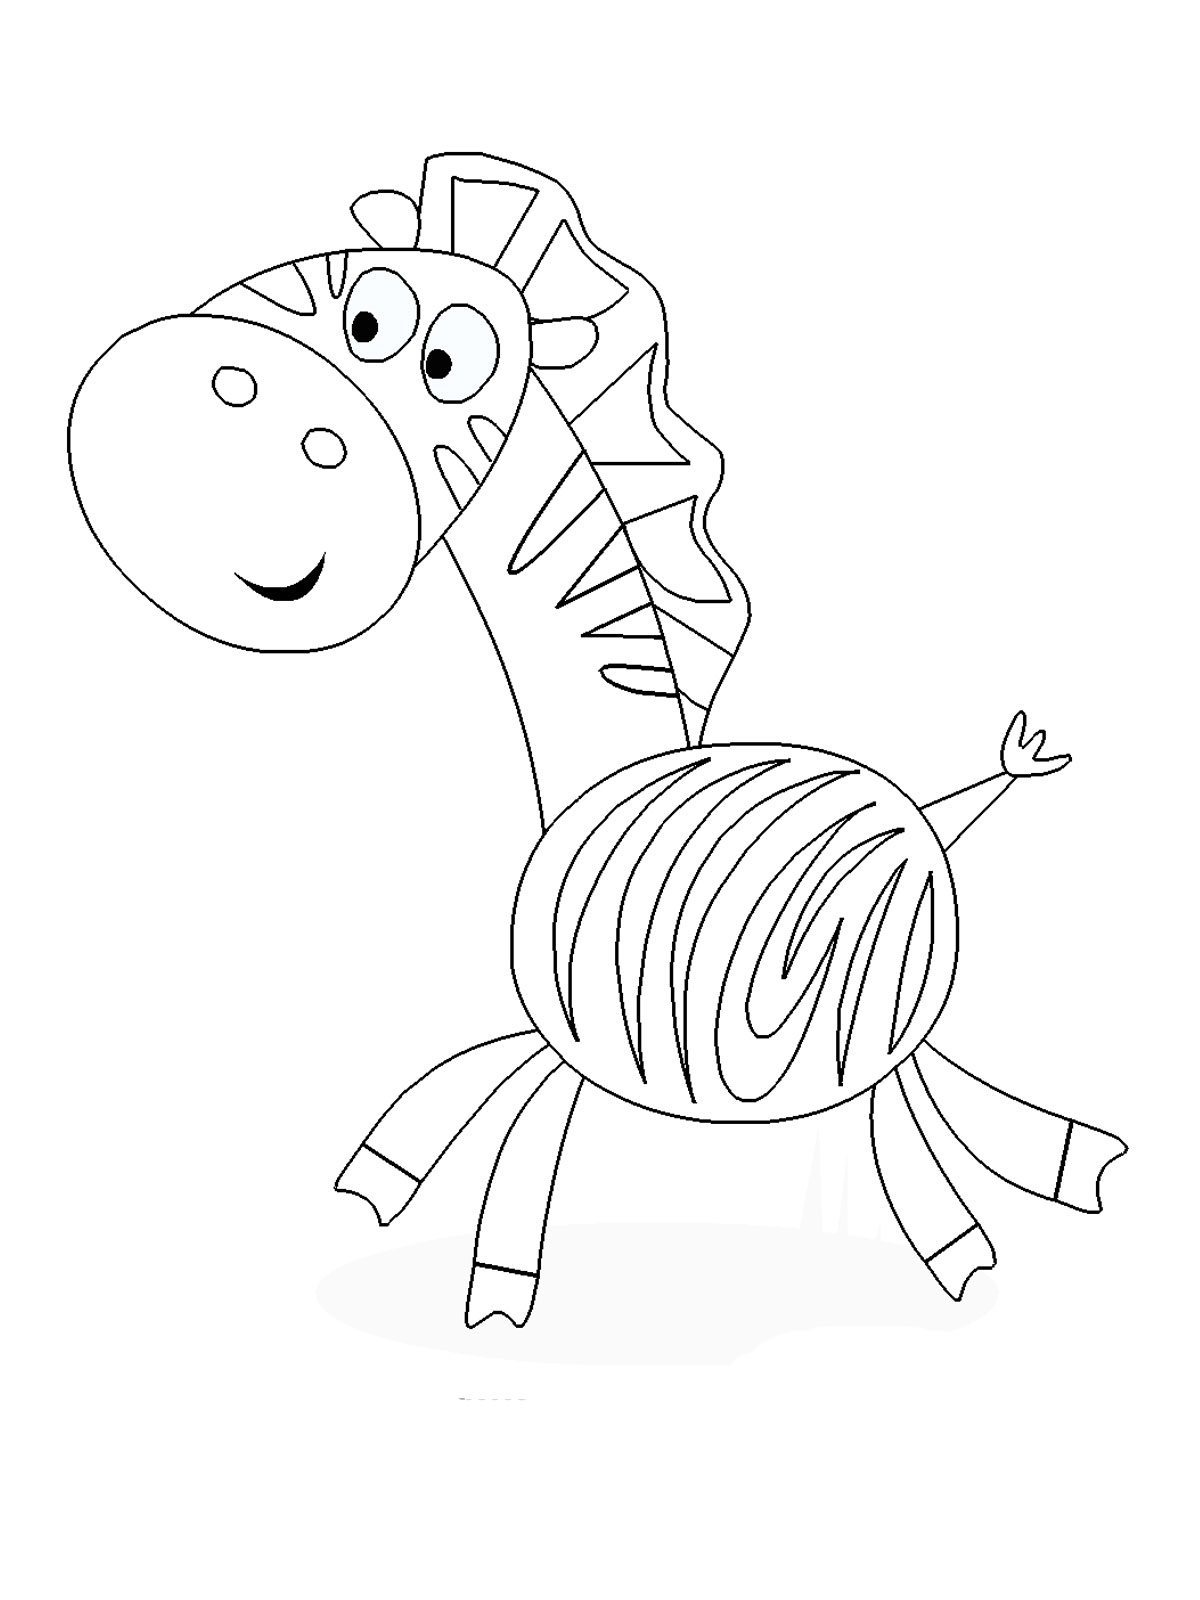 kids coloring pages monkeys to download for free monkeys kids coloring pages pages kids coloring